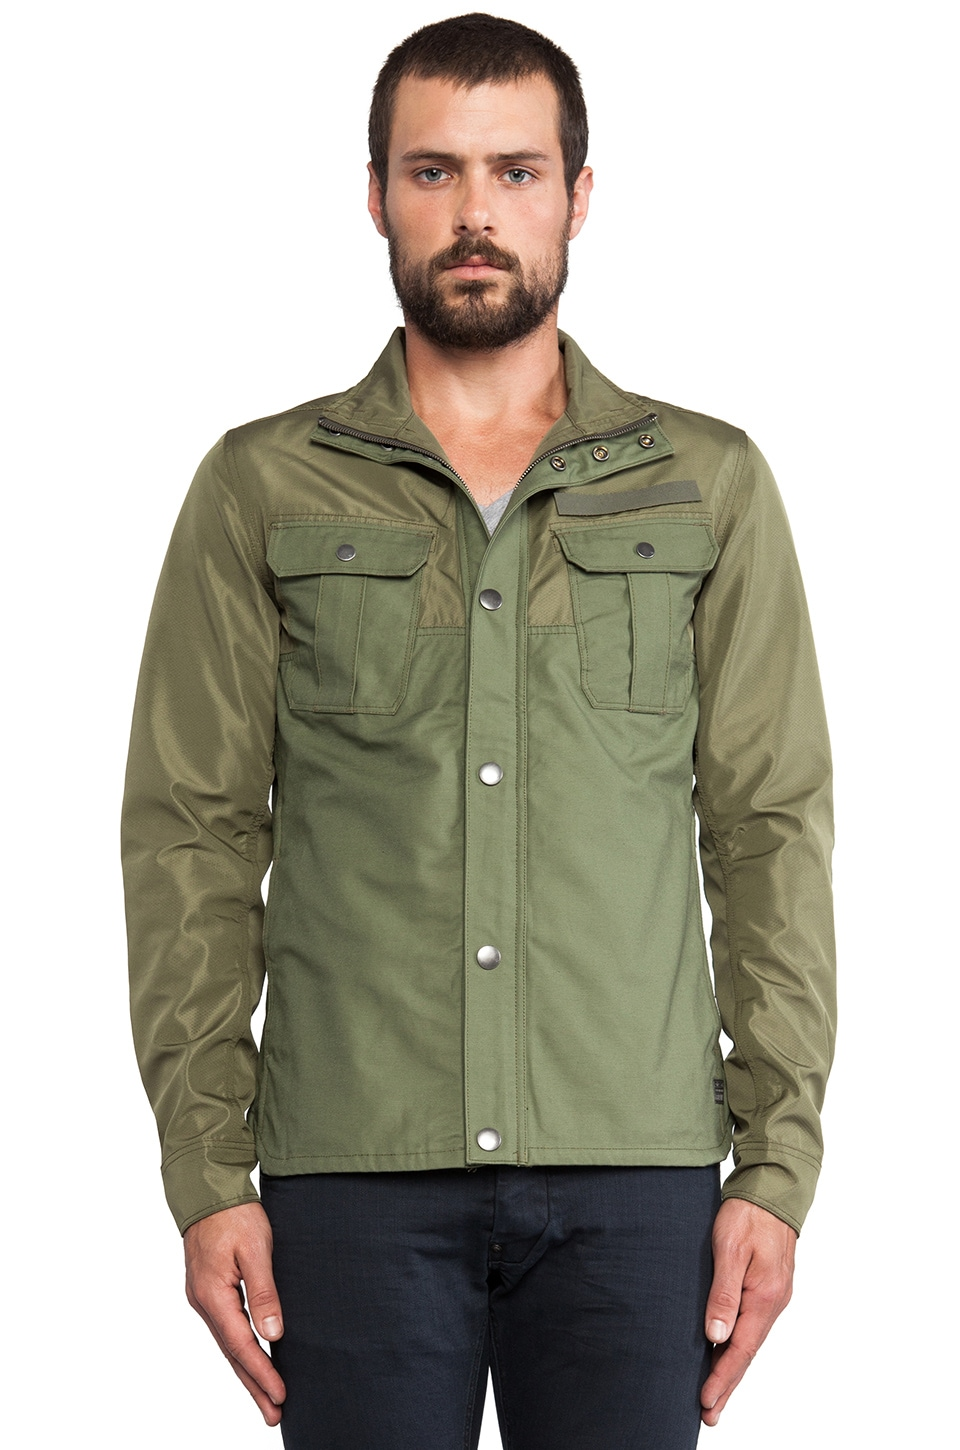 G-Star Filch Bonded Overshirt in Sage